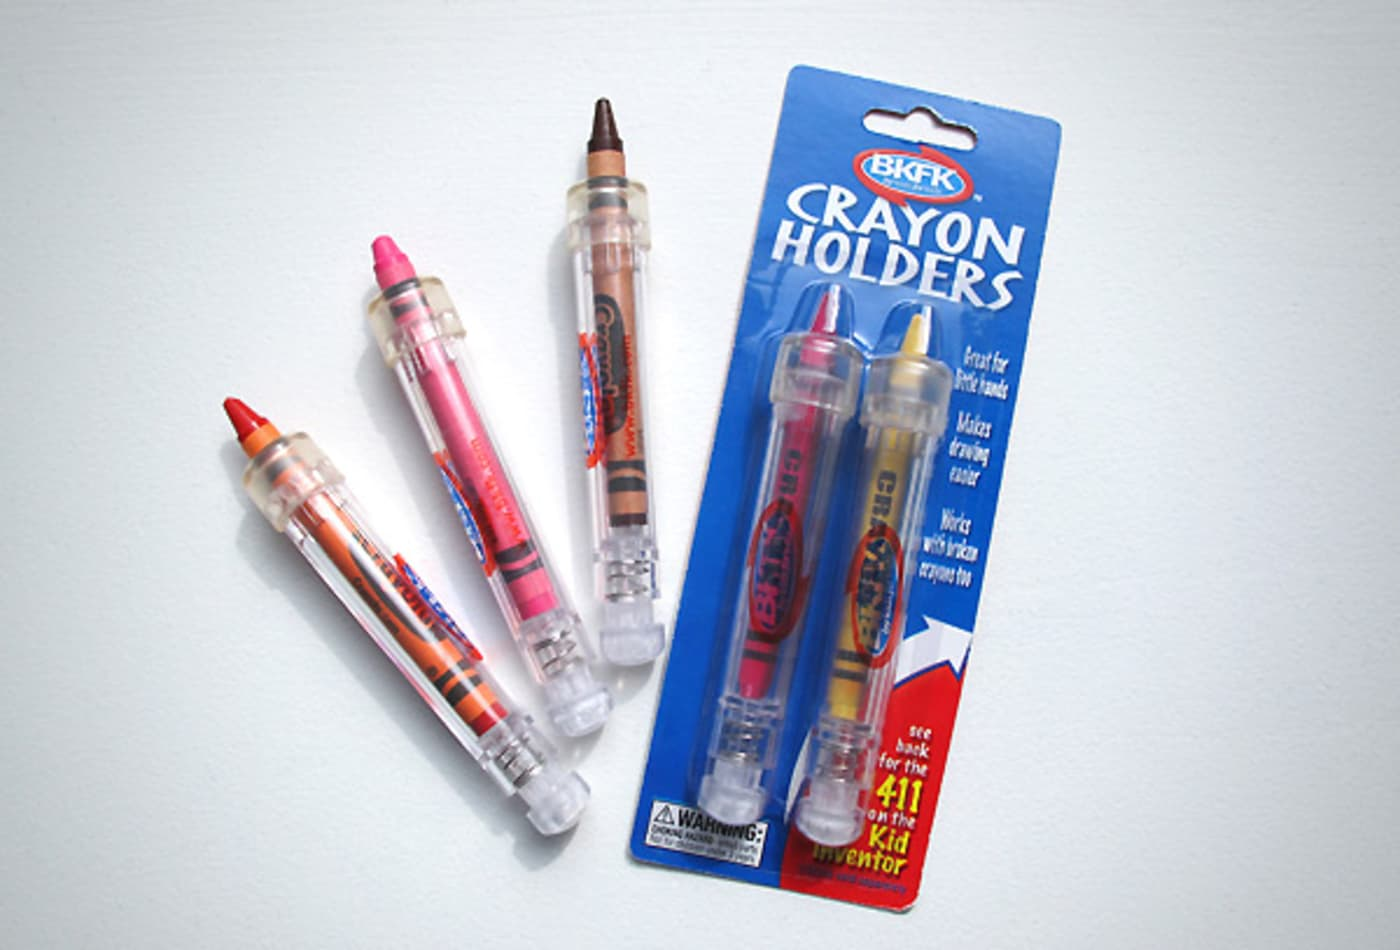 CNBC_inventions_by_kids_Crayon_Holders.jpg